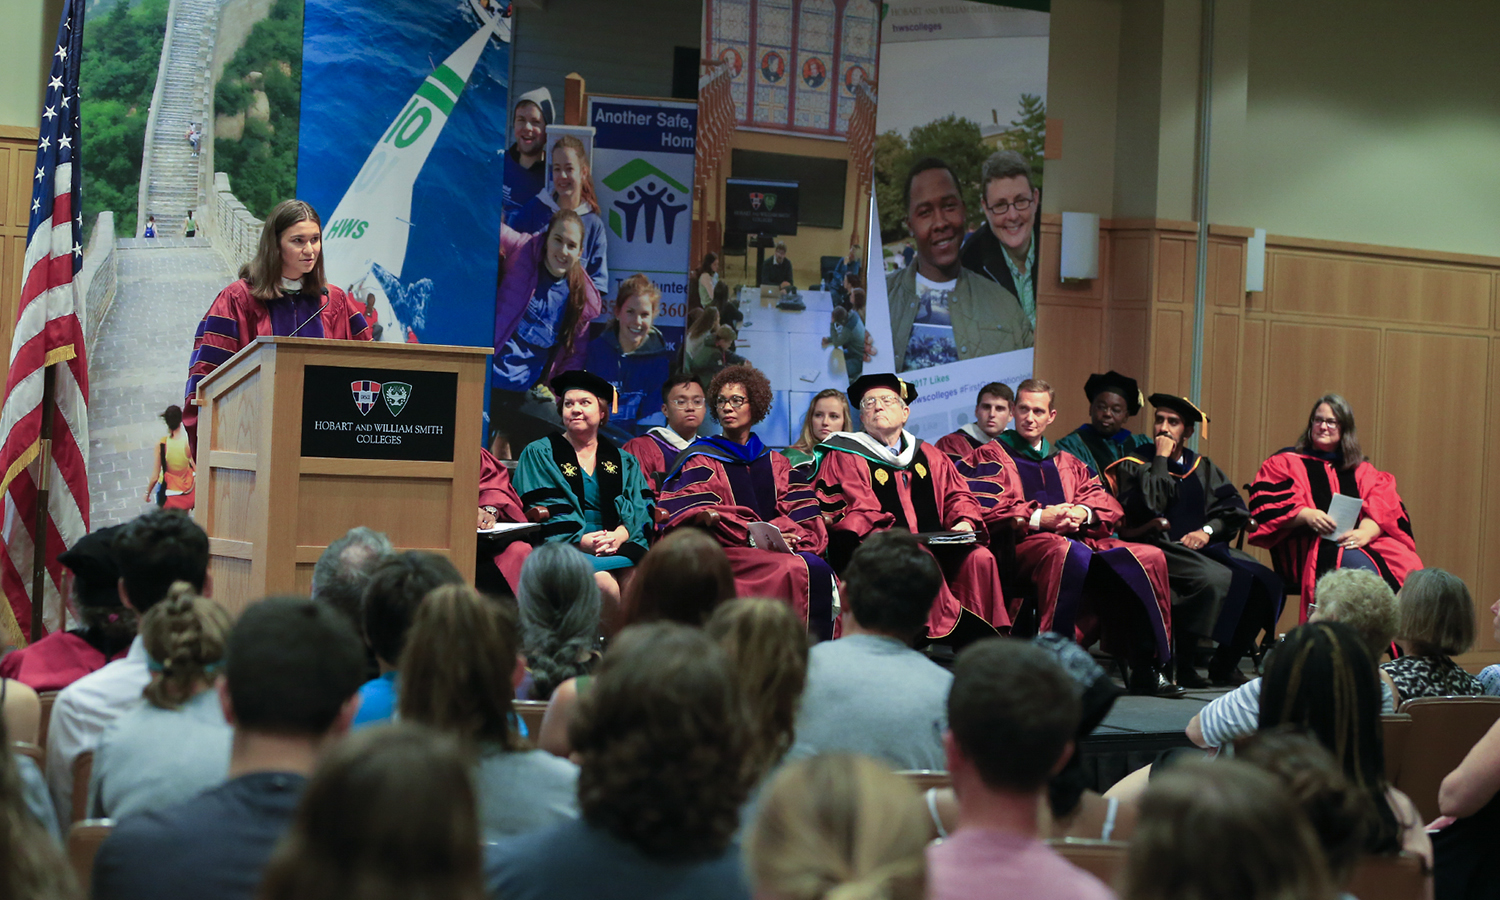 Student Trustee Caitlin Lasher '19 describes how her experiences at HWS prepared her to overcome obstacles and pursue new adventures during her Convocation 2018 remarks.